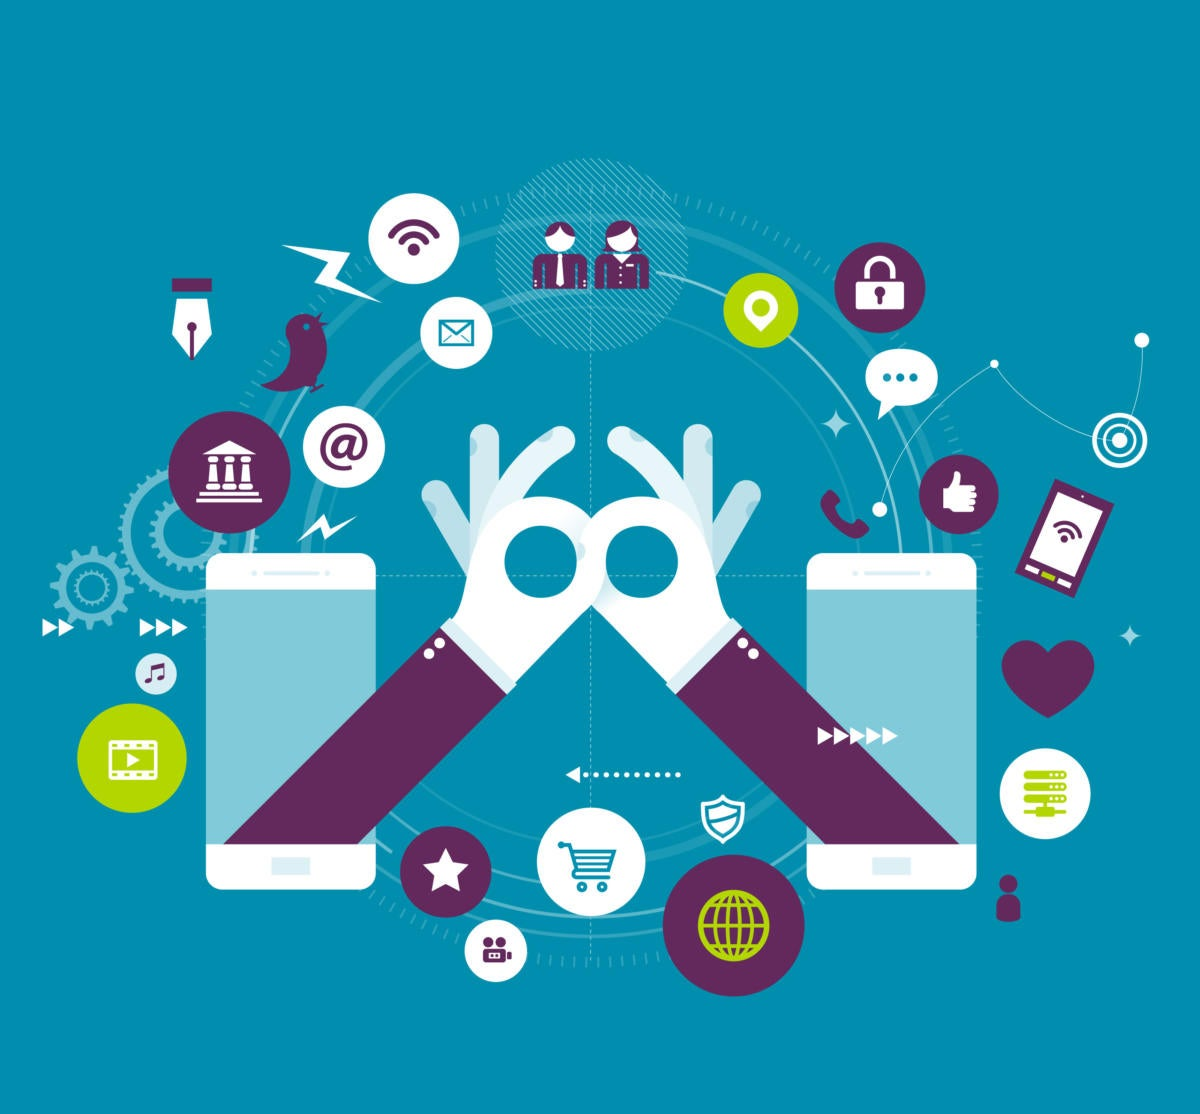 Developers: APIs are crucial to business, but tough to get right